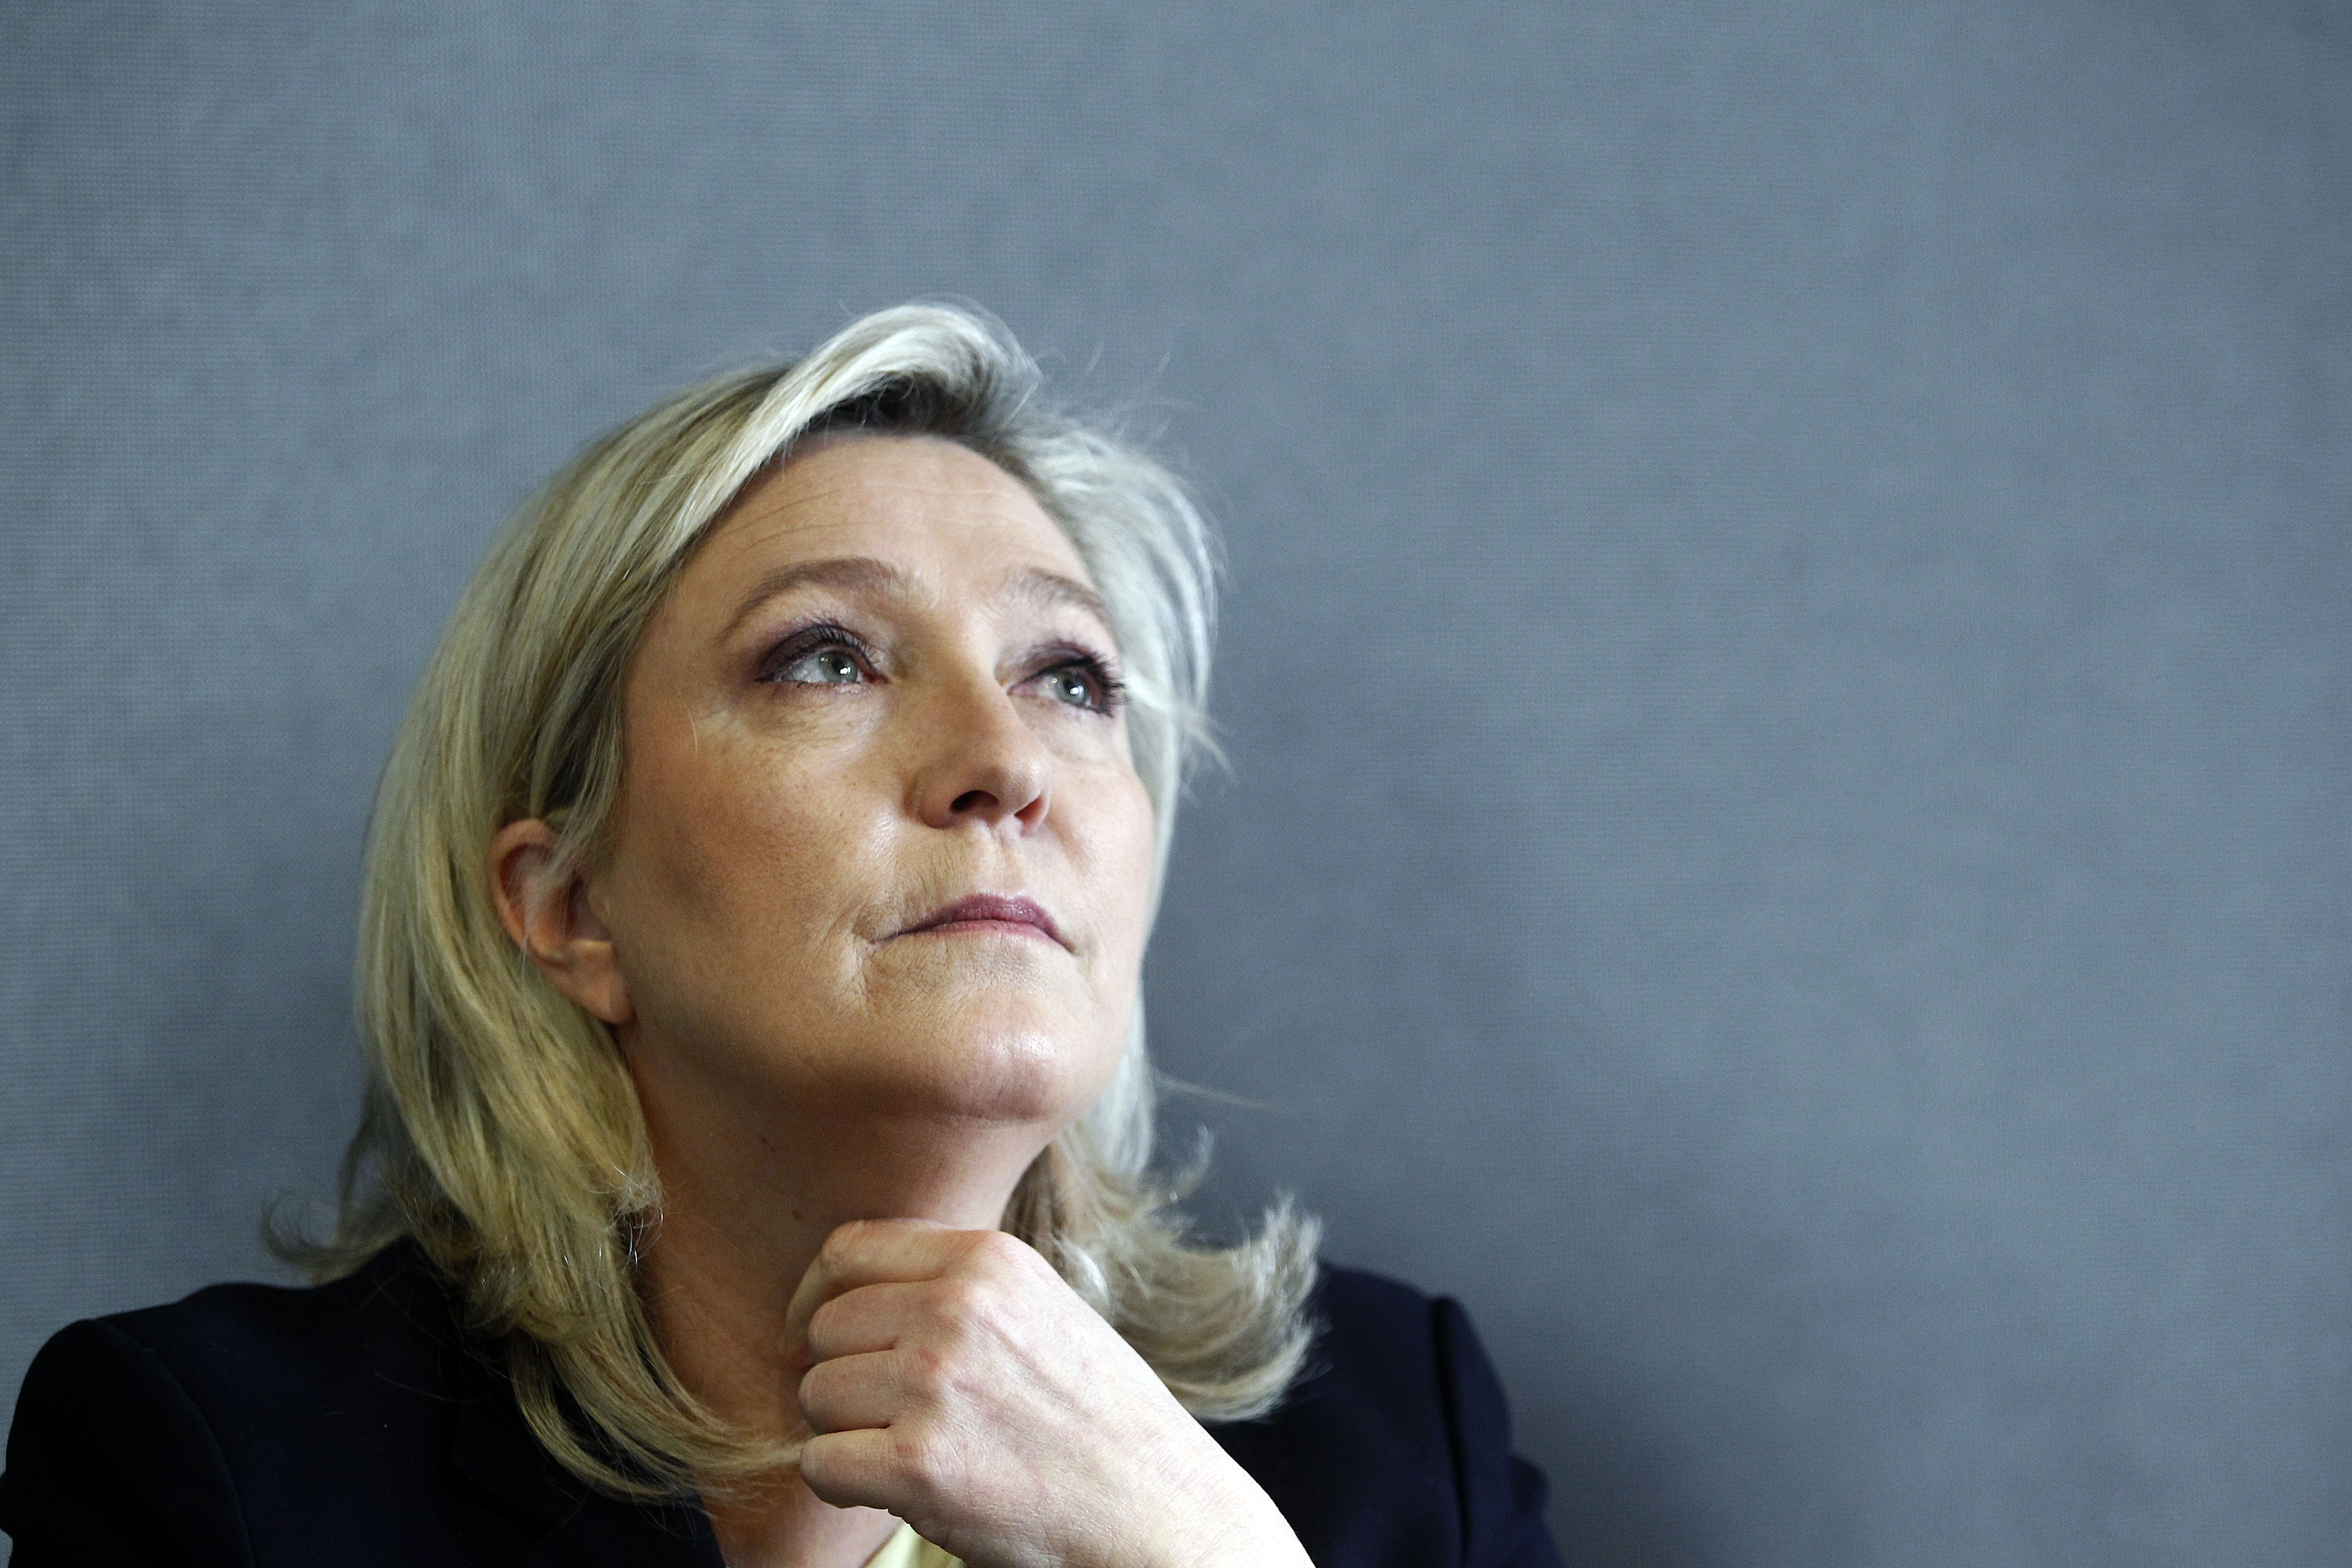 Marine Le Pen  attends a news conference on March 7, 2016 in Paris.